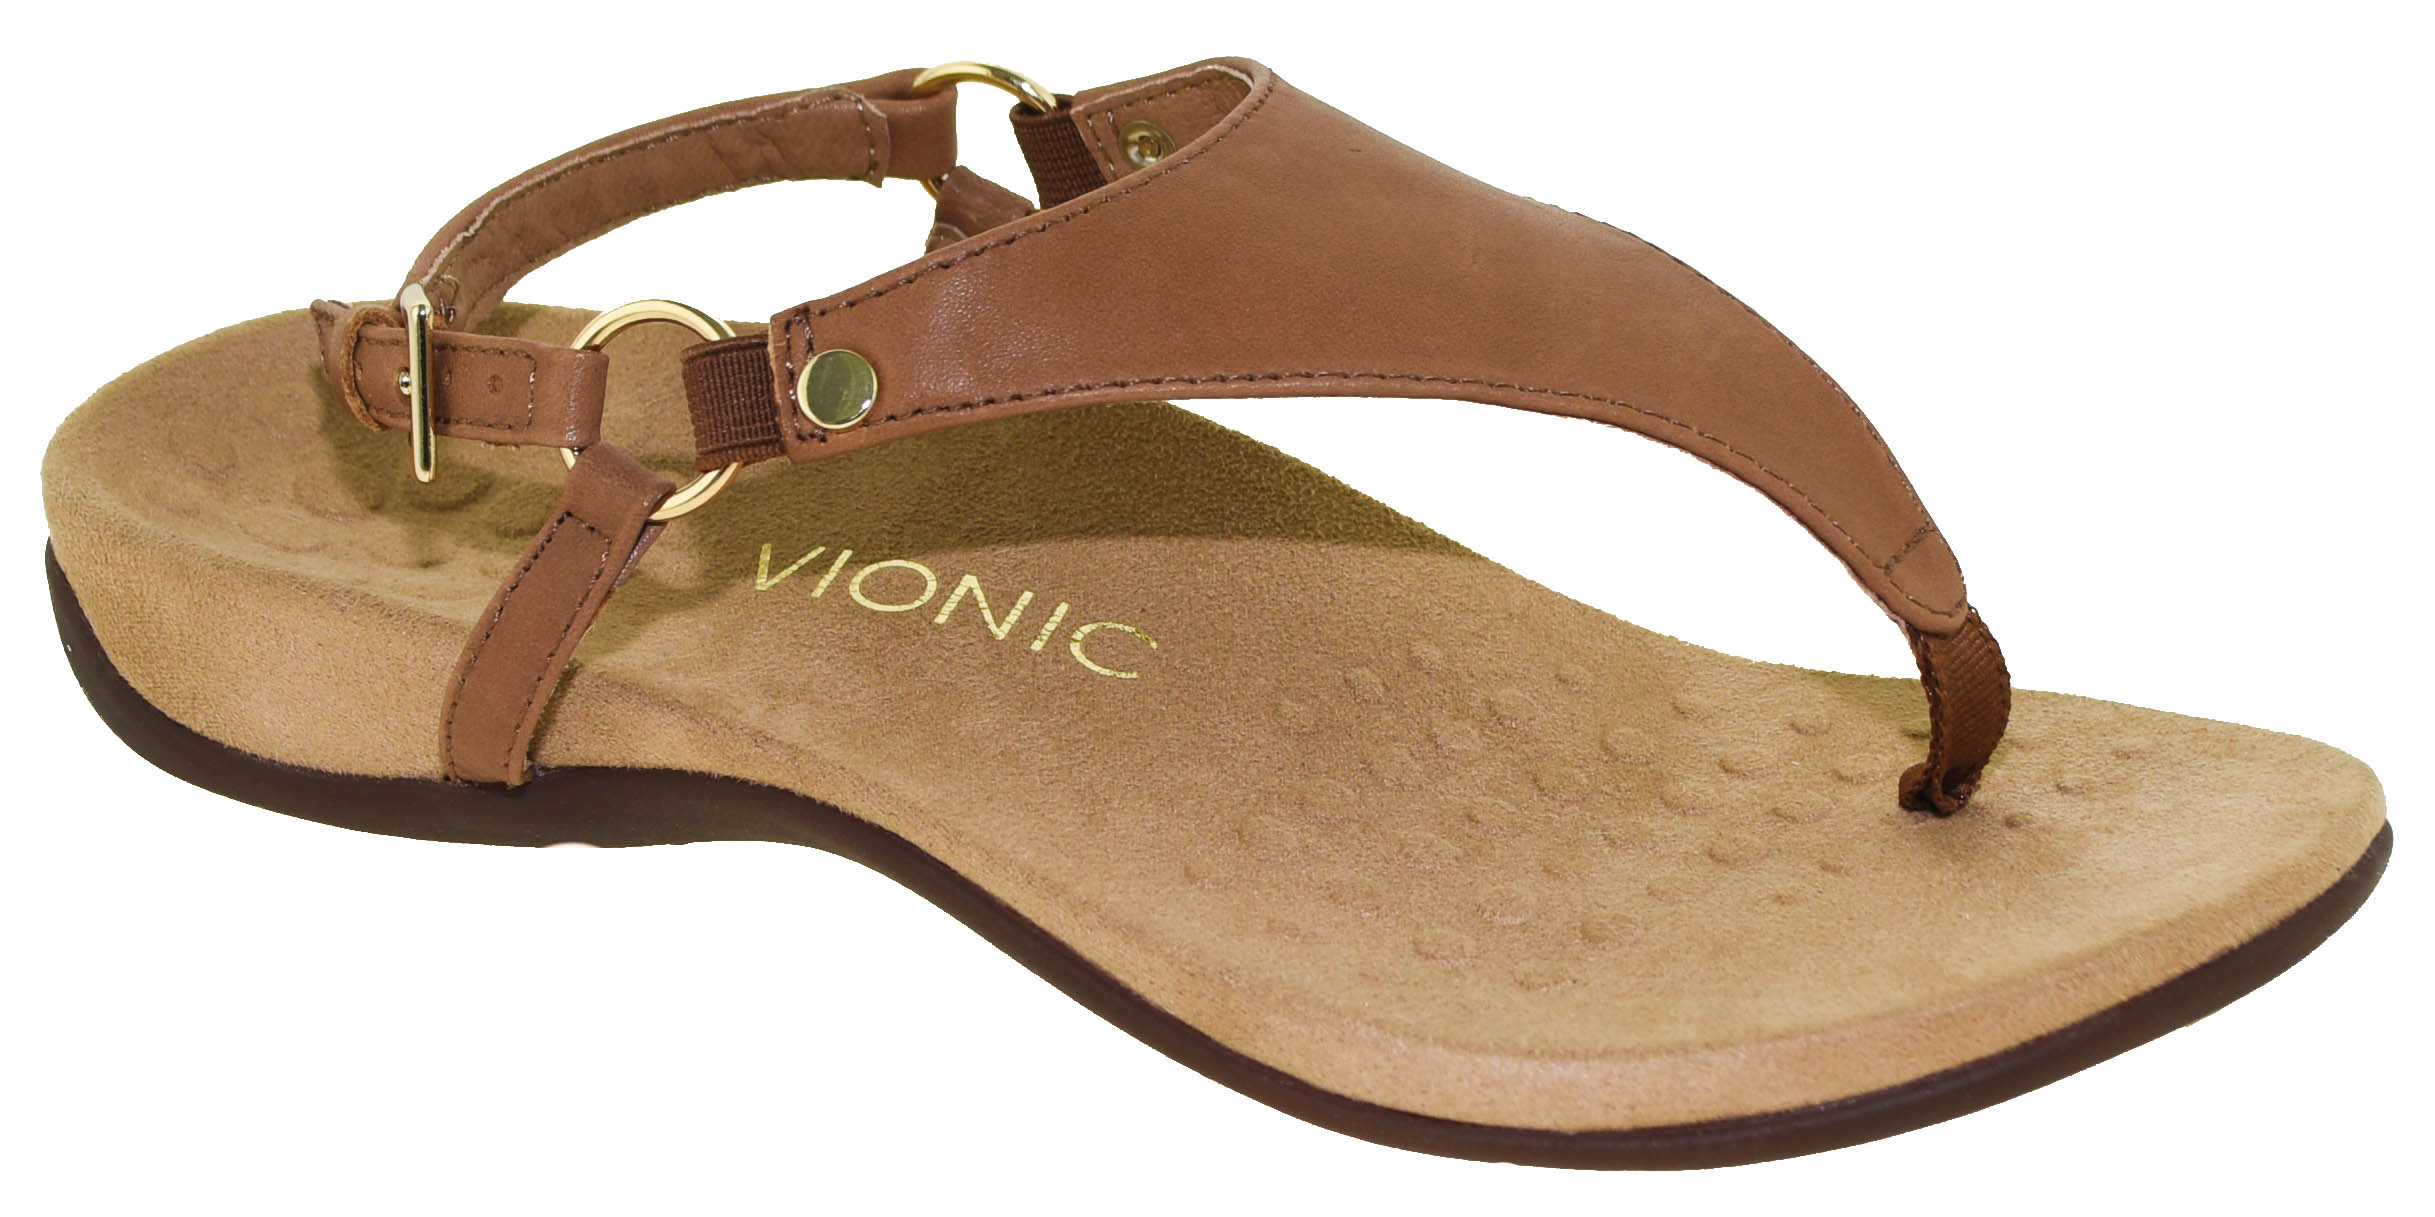 d2275425835 Vionic Women s Rest Kirra Backstrap Sandal Brown